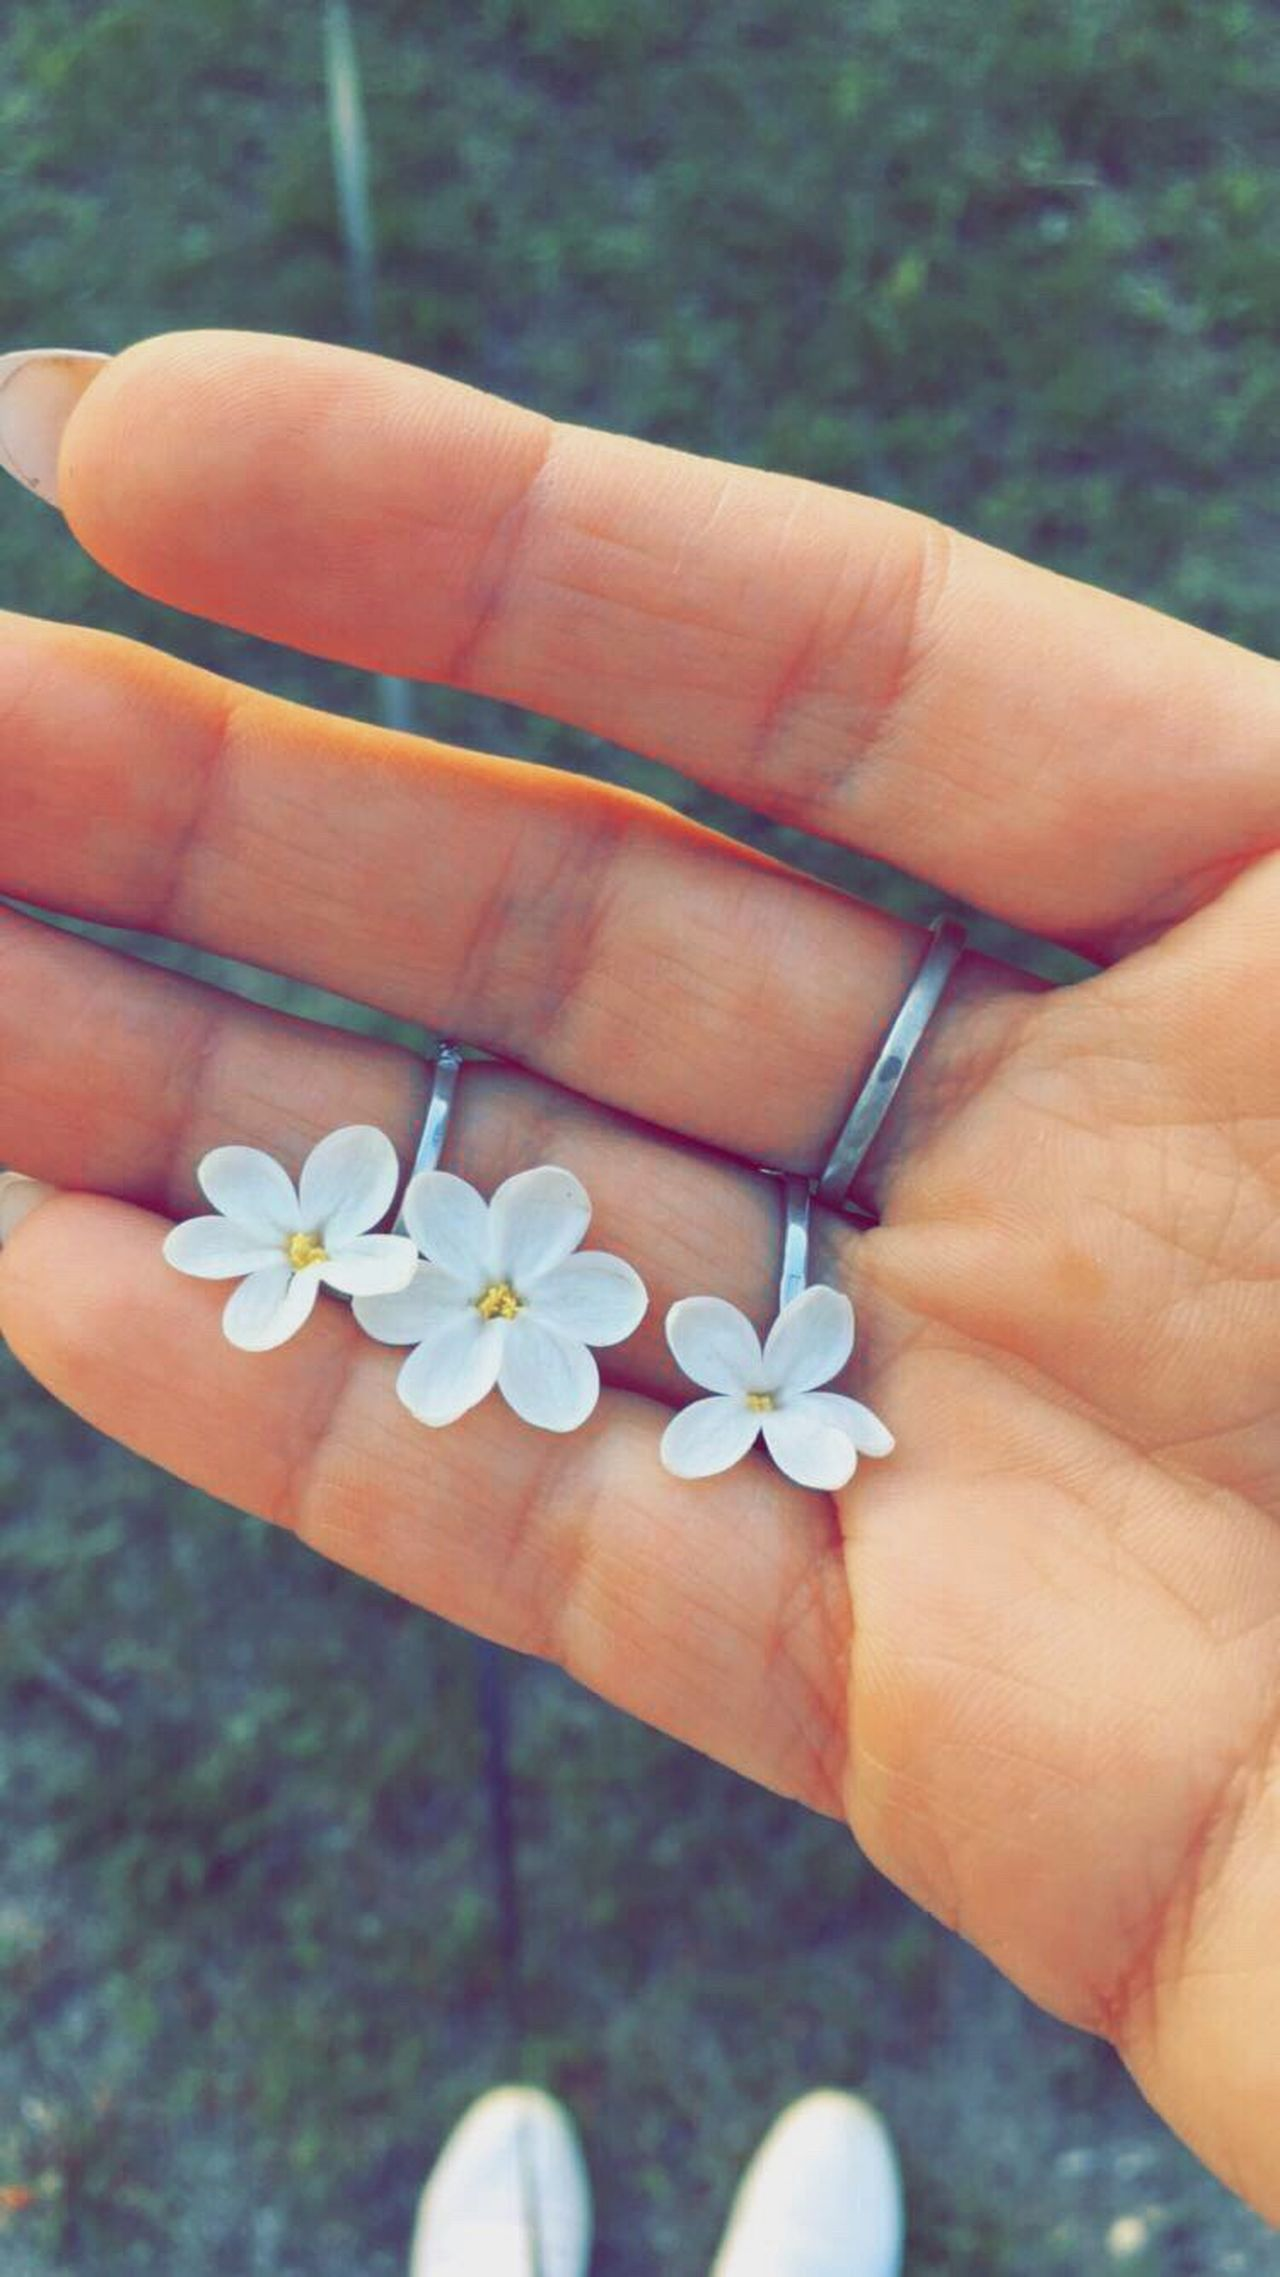 Make a wish 😊 Estonia Lilac Lilac Flower White Lilac Lilac Flowers Five Petal Flower Six Petal Lil Summer Love Summer Sunny